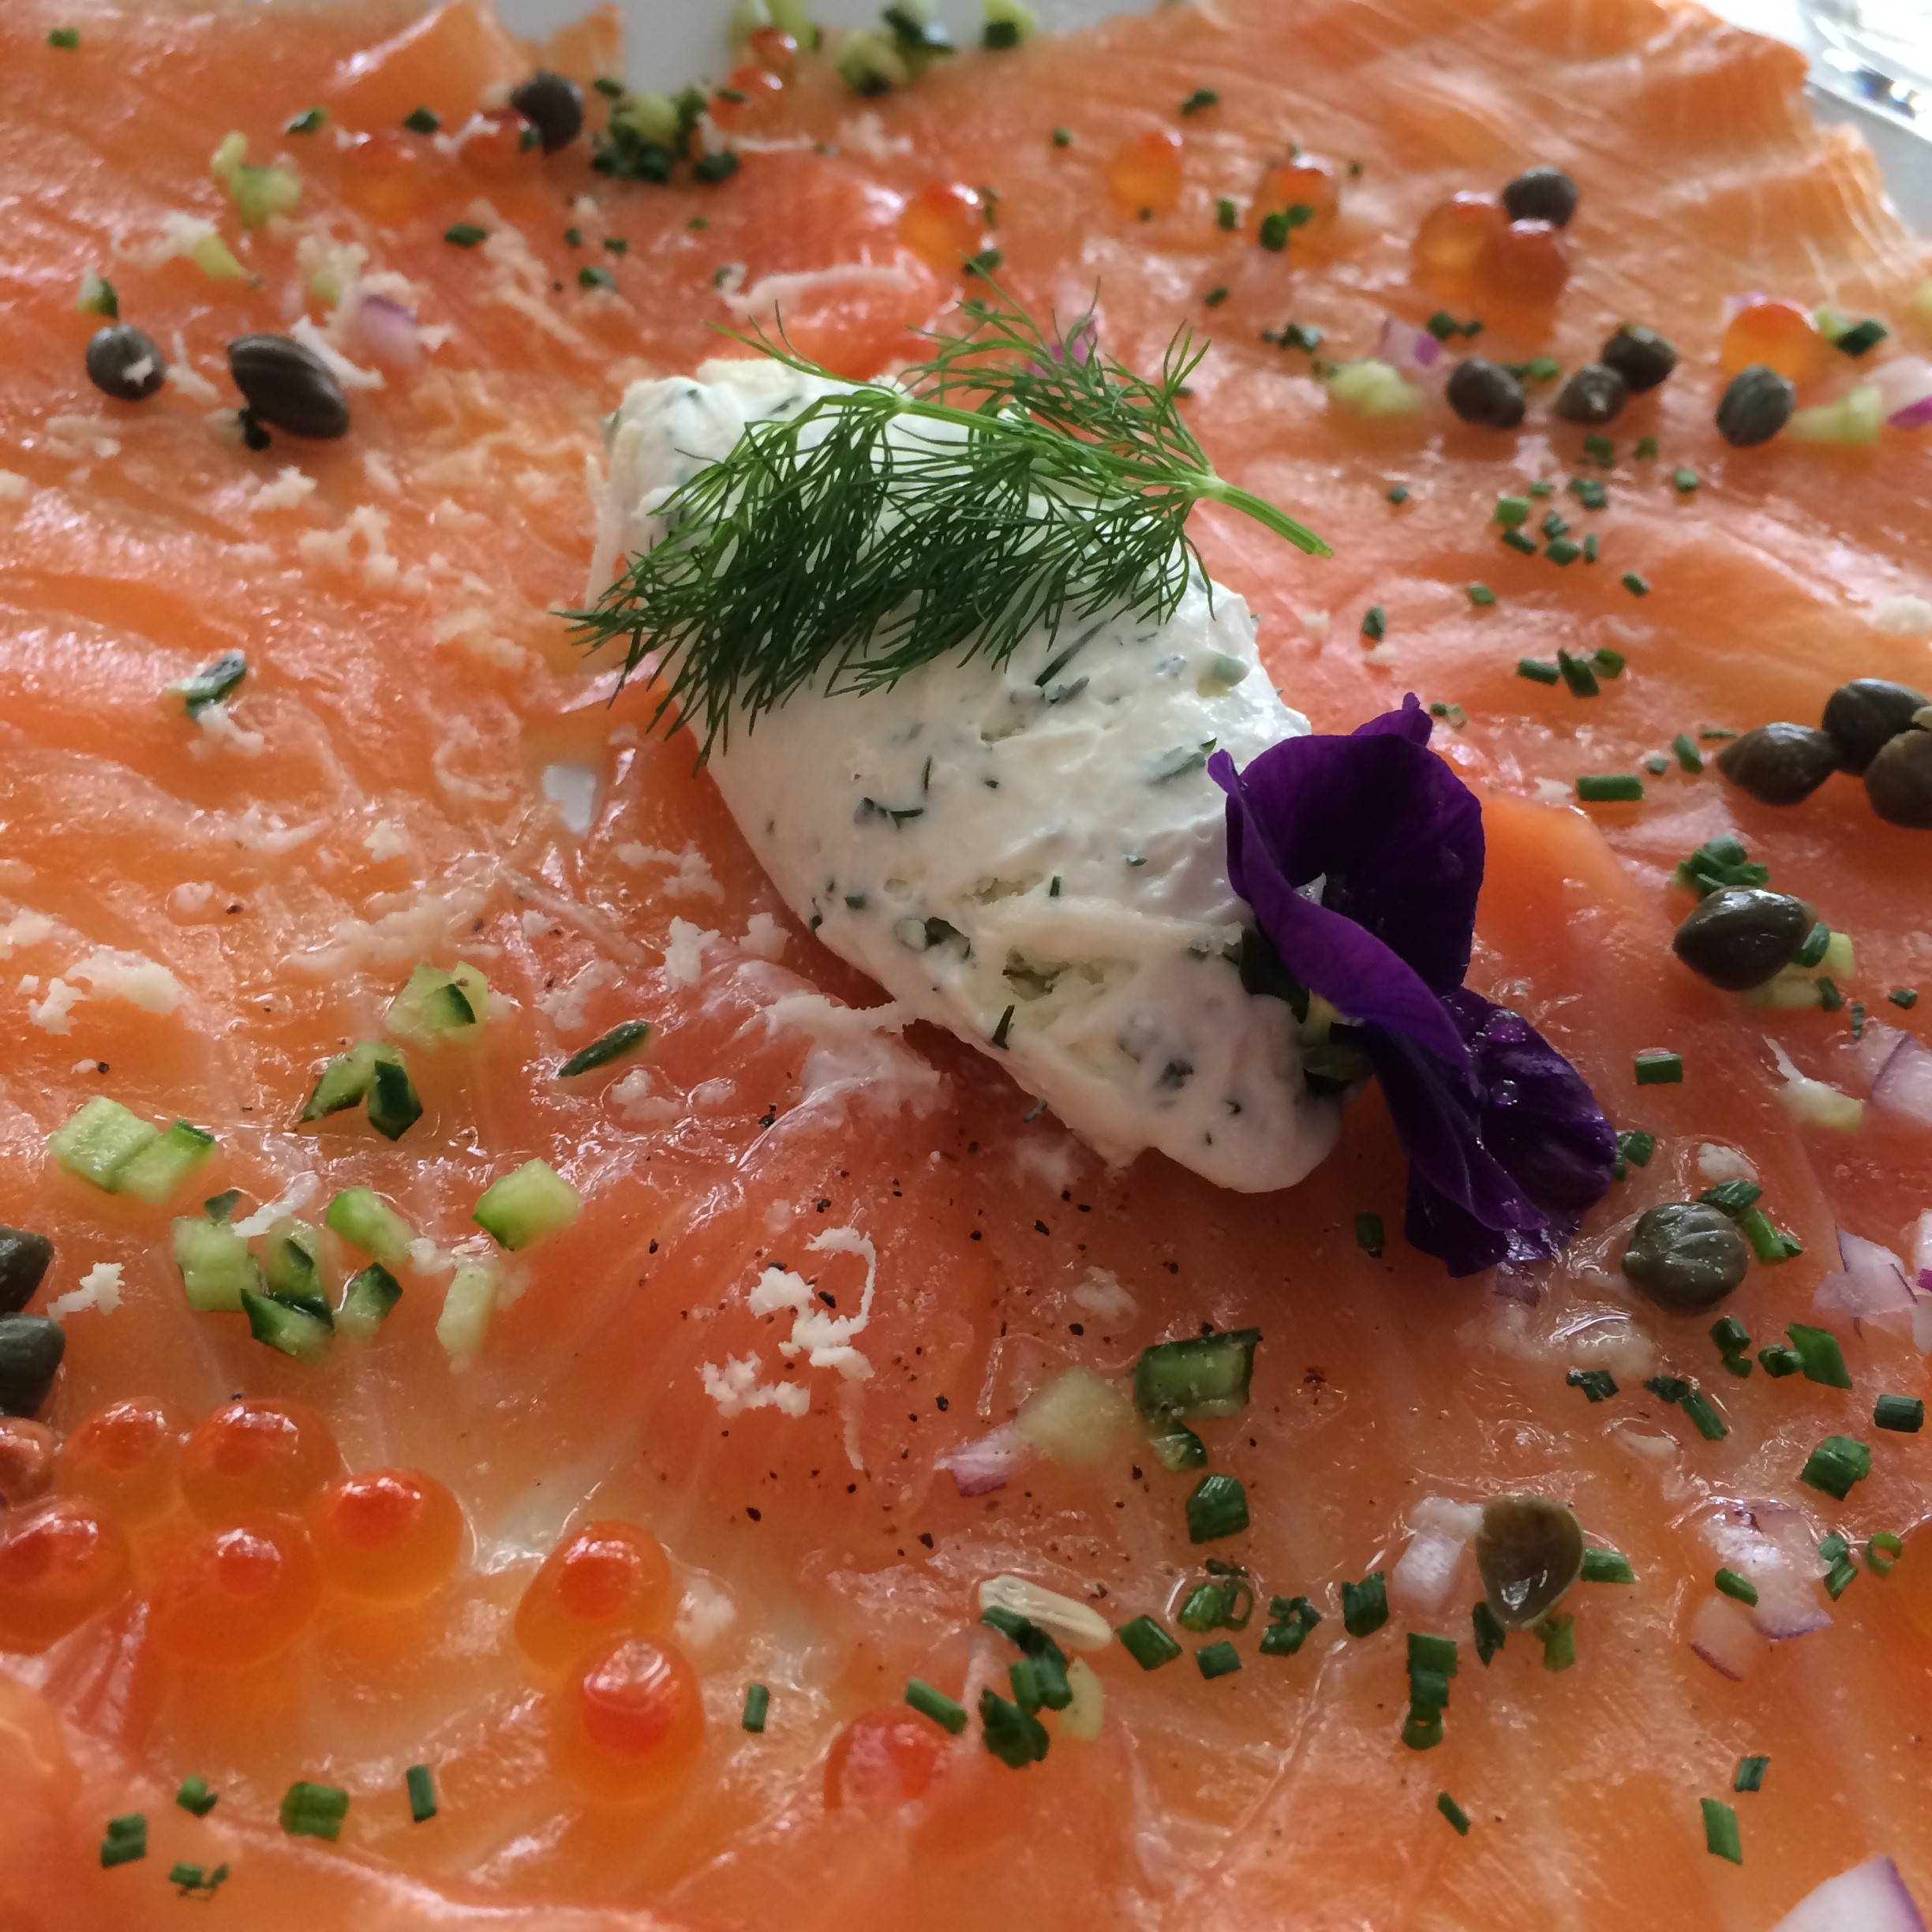 House Cured Smoked Salmon